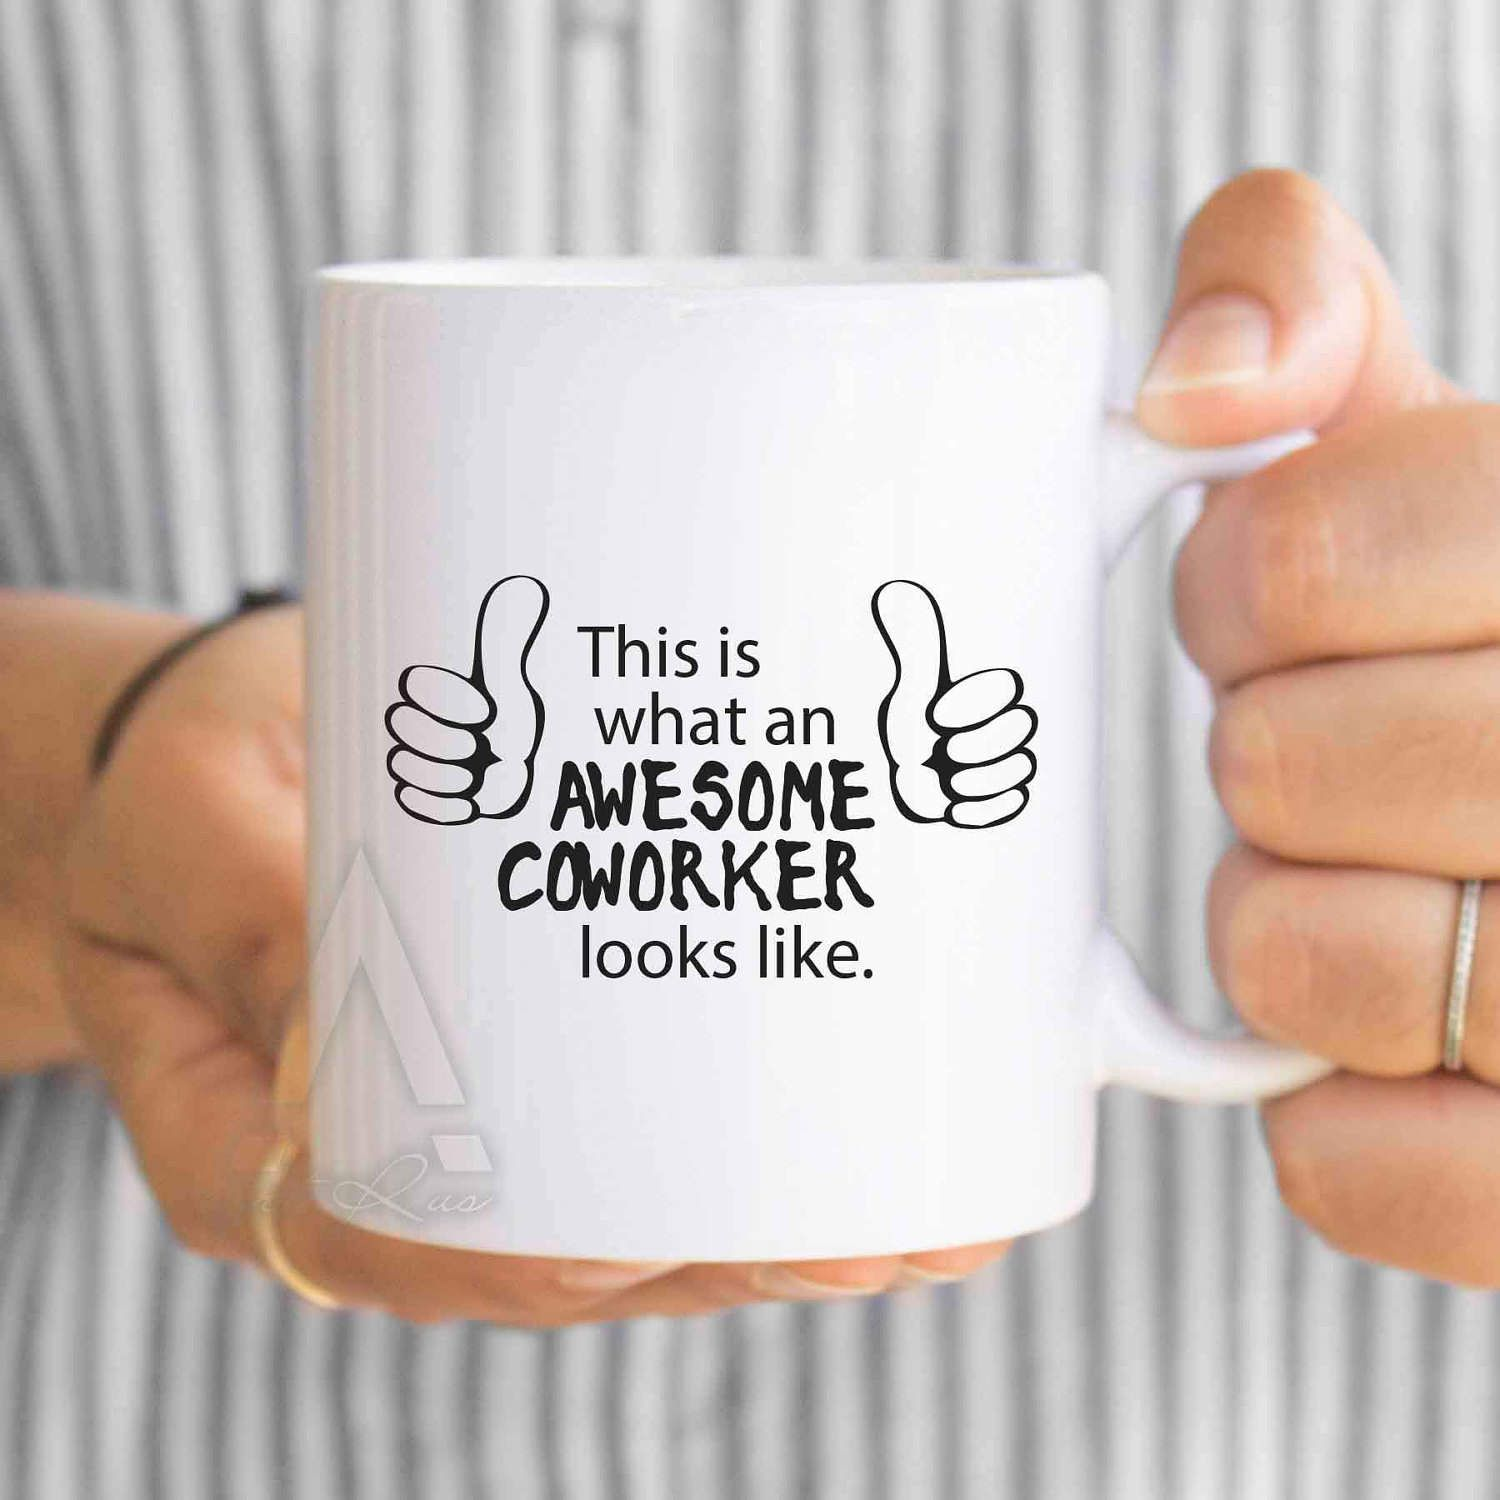 Birthday Gifts For Coworkers Coworker Gift This Is What An Awesome Looks Like Mug Thank You Leaving MU405 By ArtRuss On Etsy